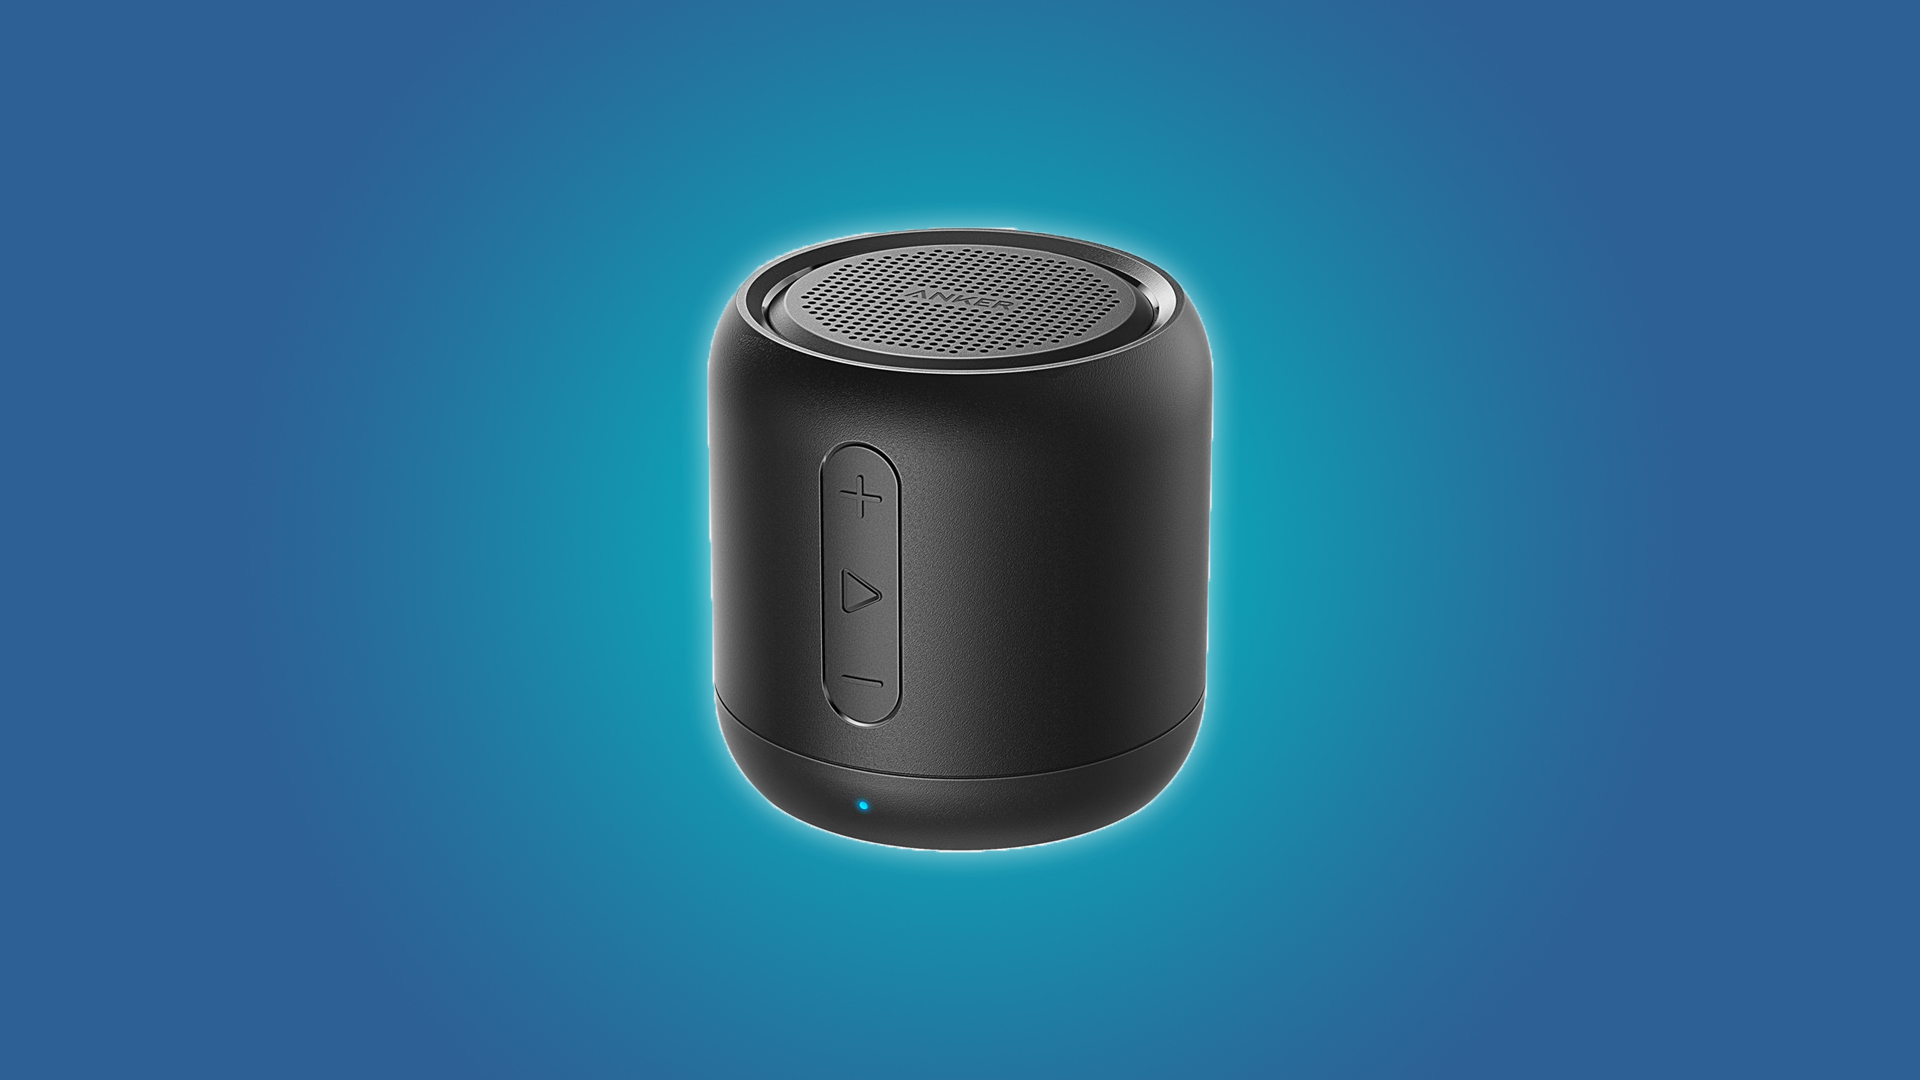 The Anker SoundCore Mini Bluetooth Speaker